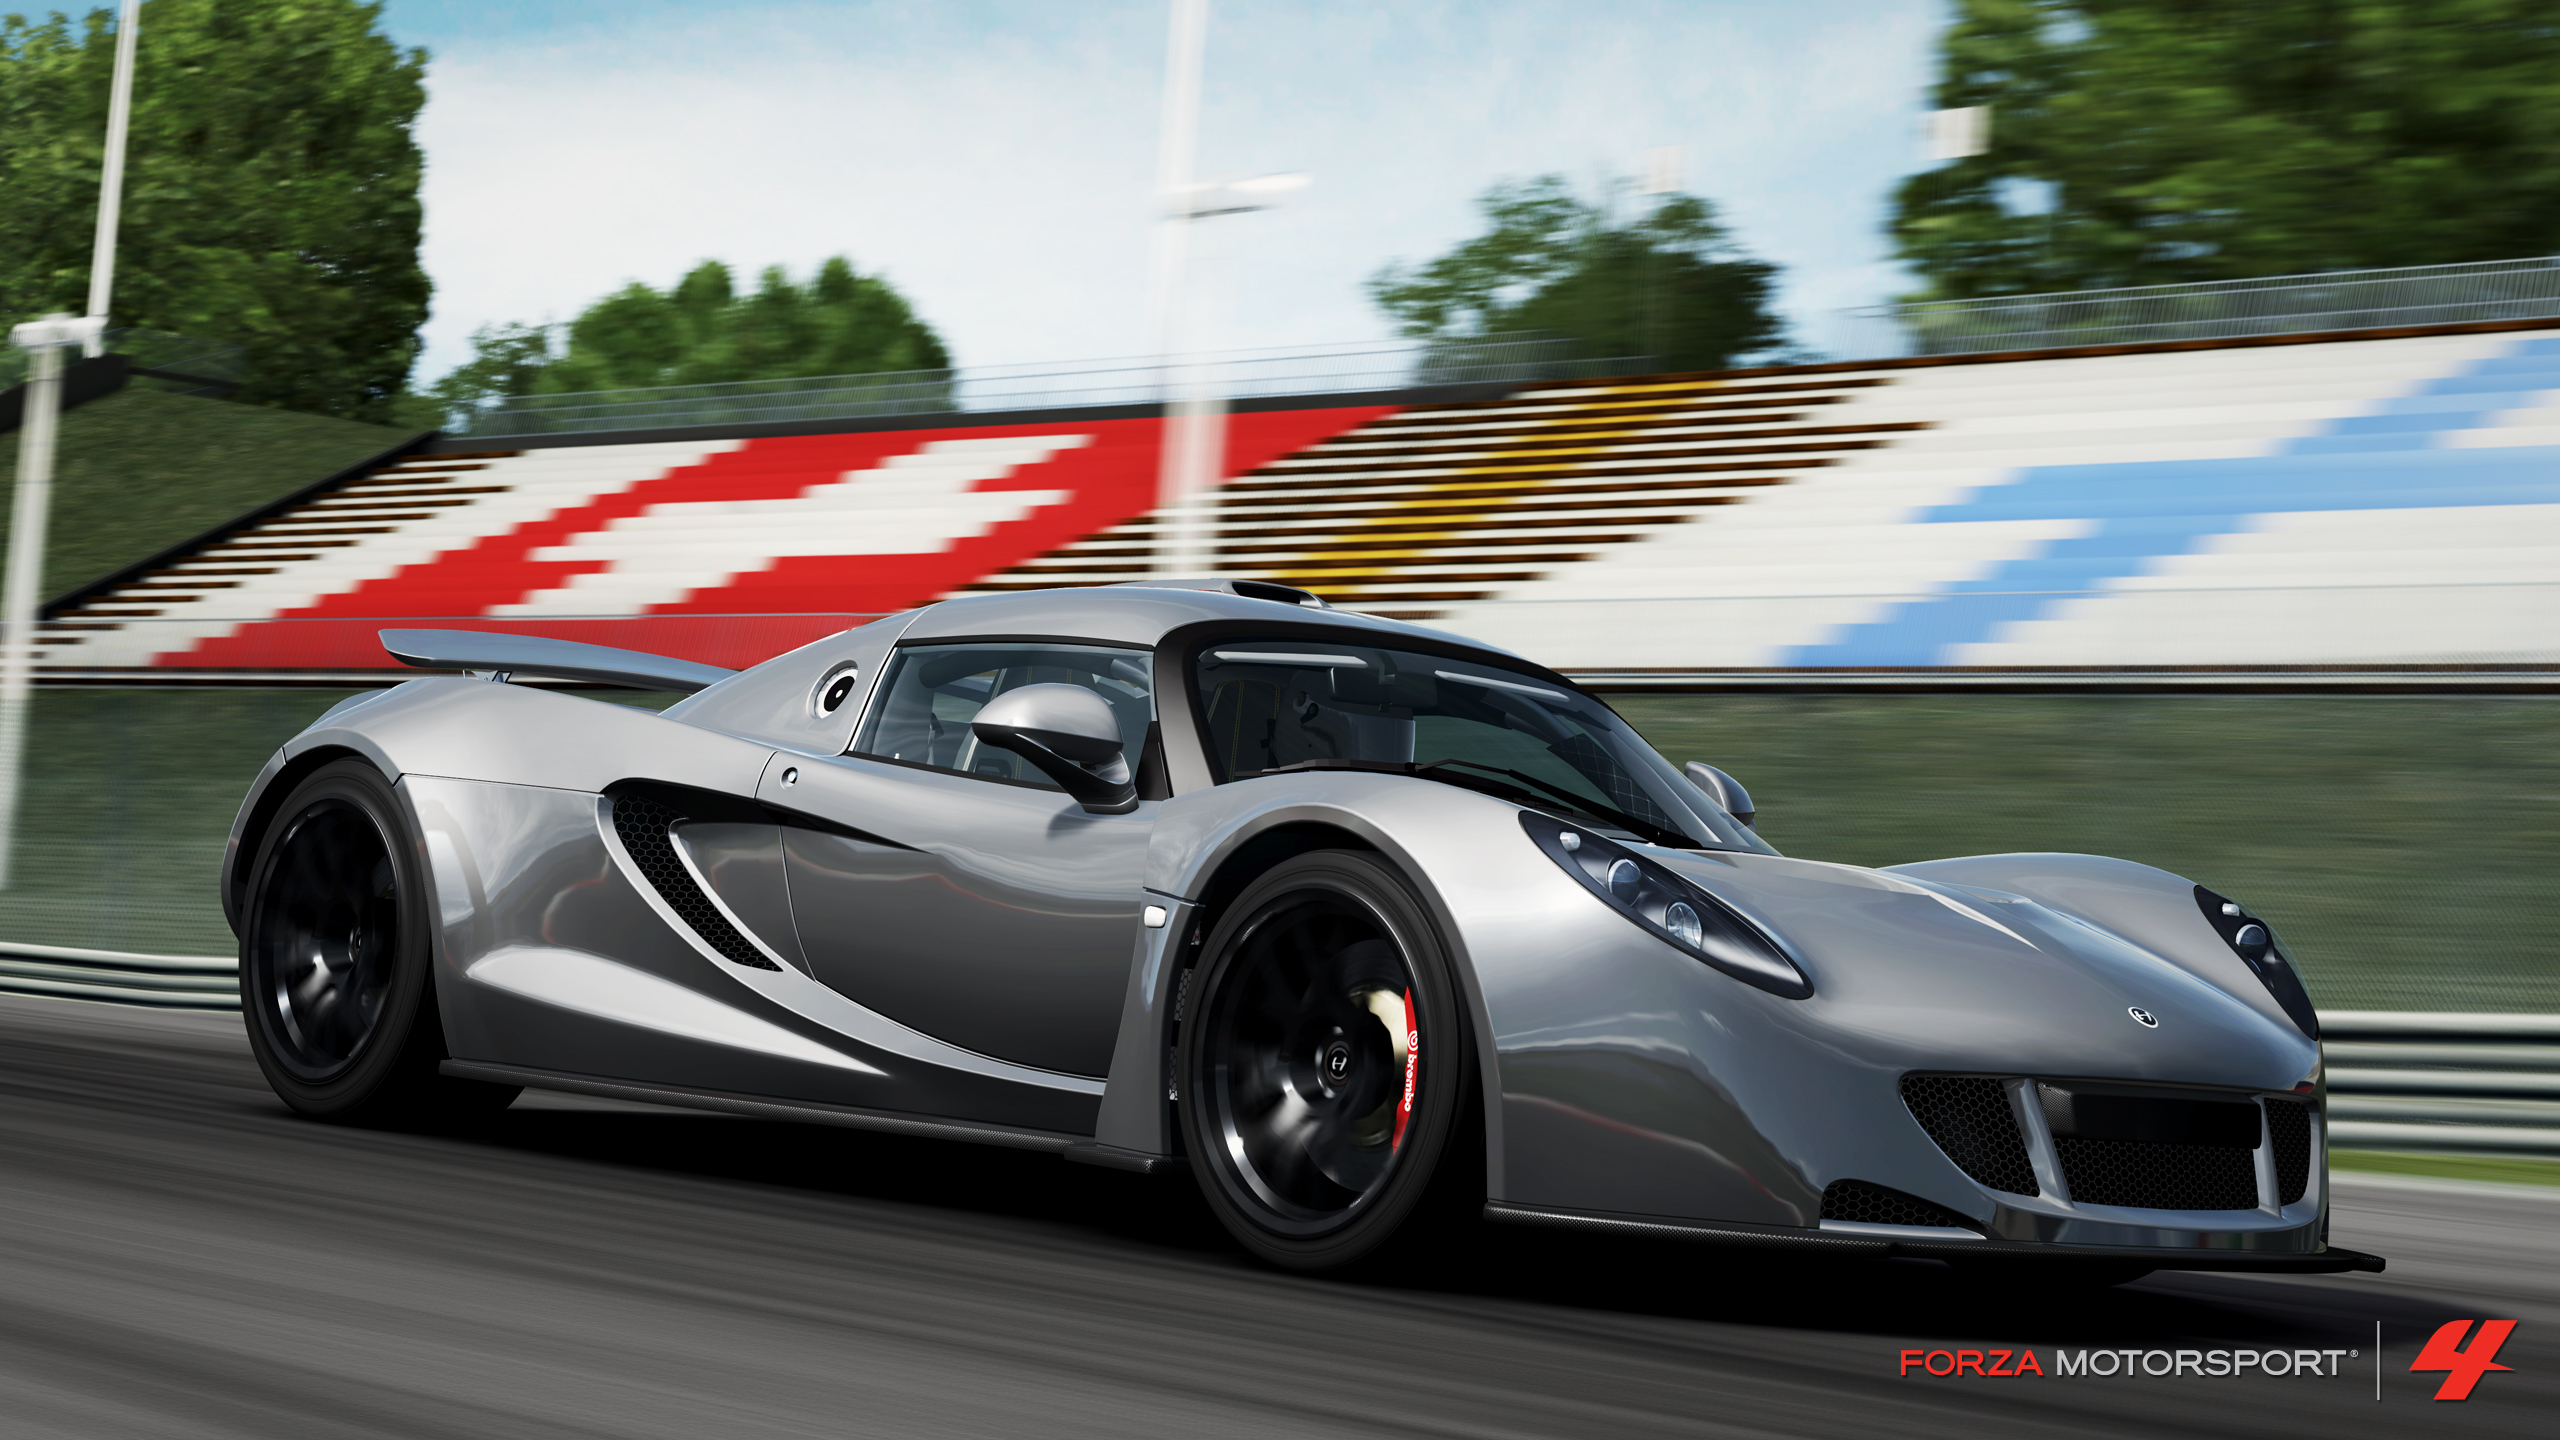 forza venom motorsport gt cars hennessey pack gear amc pacer ten xbox newest vehicles gamers mph fly tuesday auto live